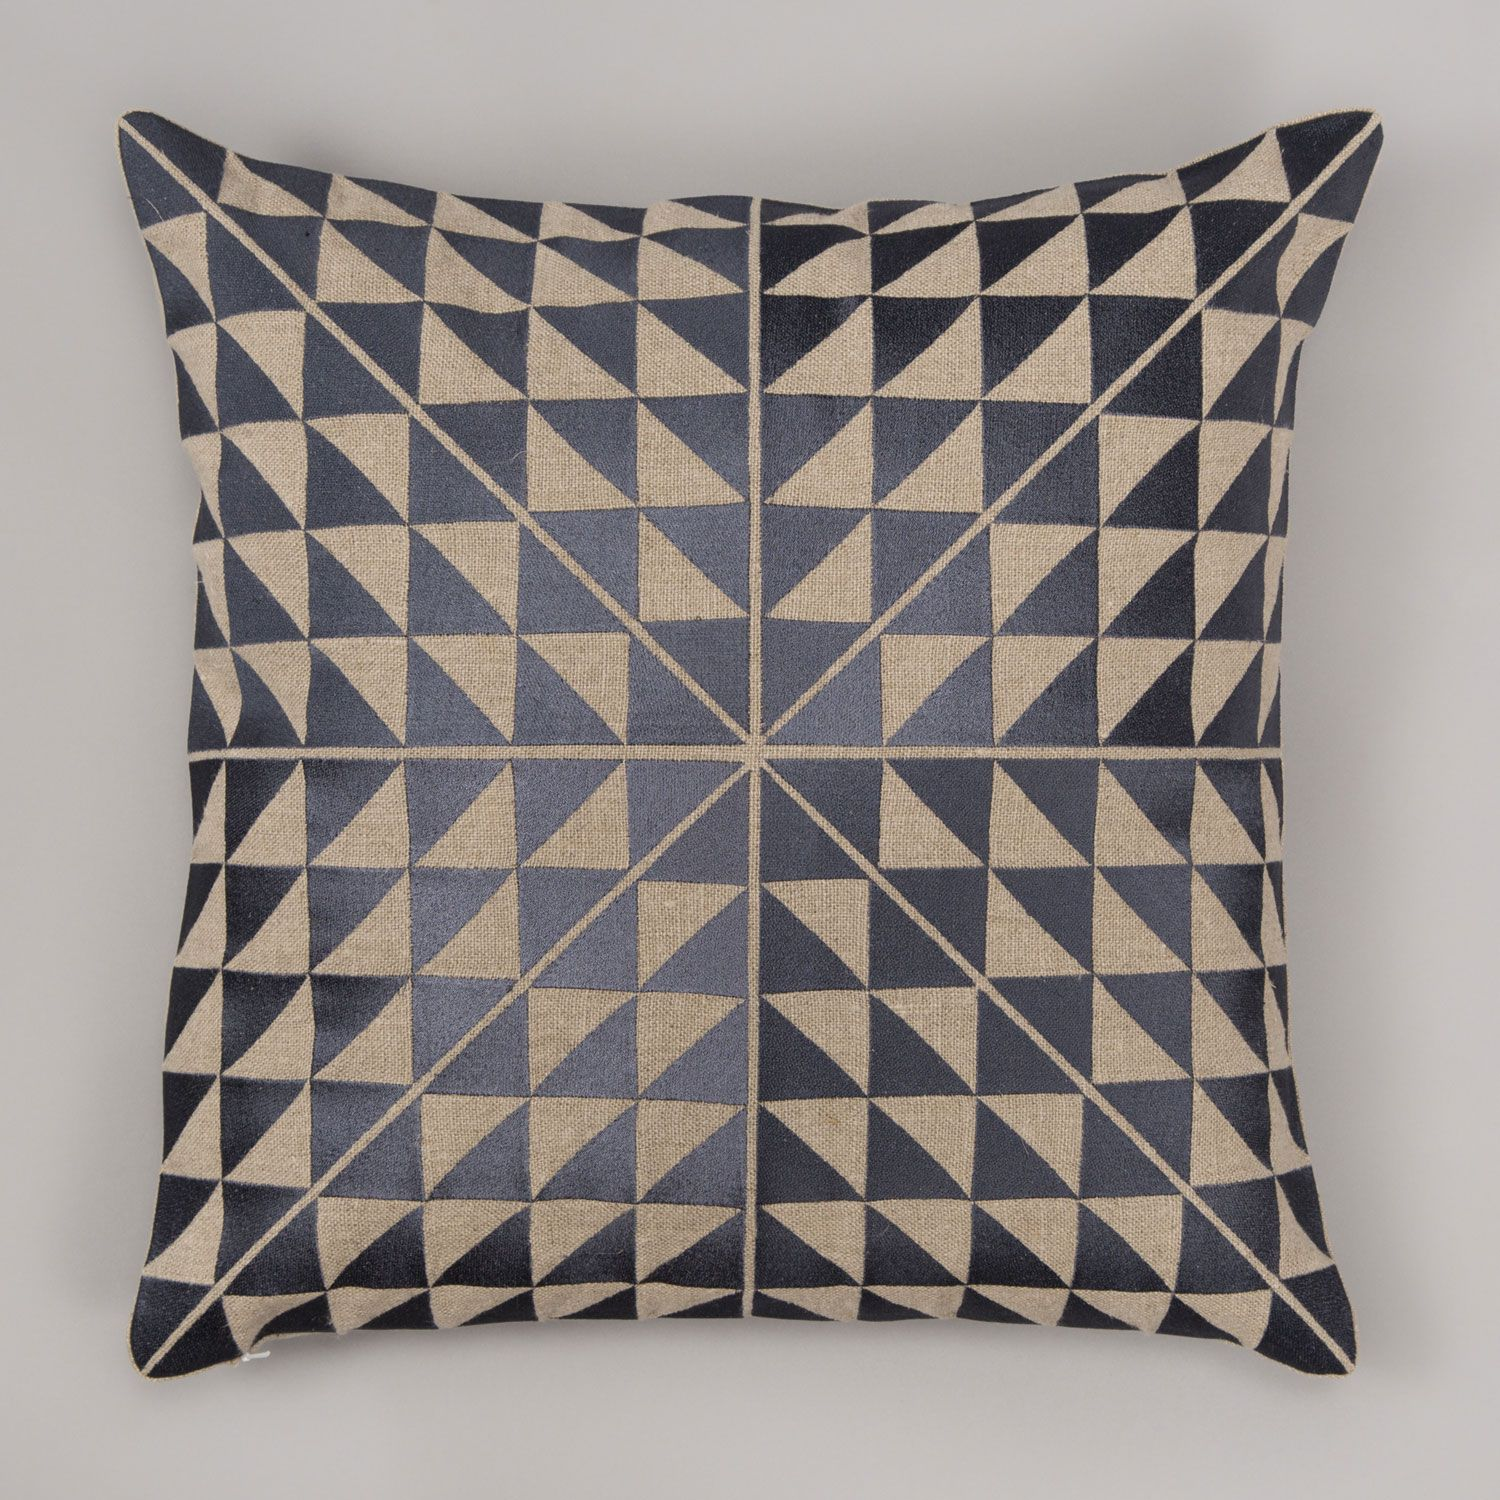 Geocentric cushion cover image lovely home ideas pinterest